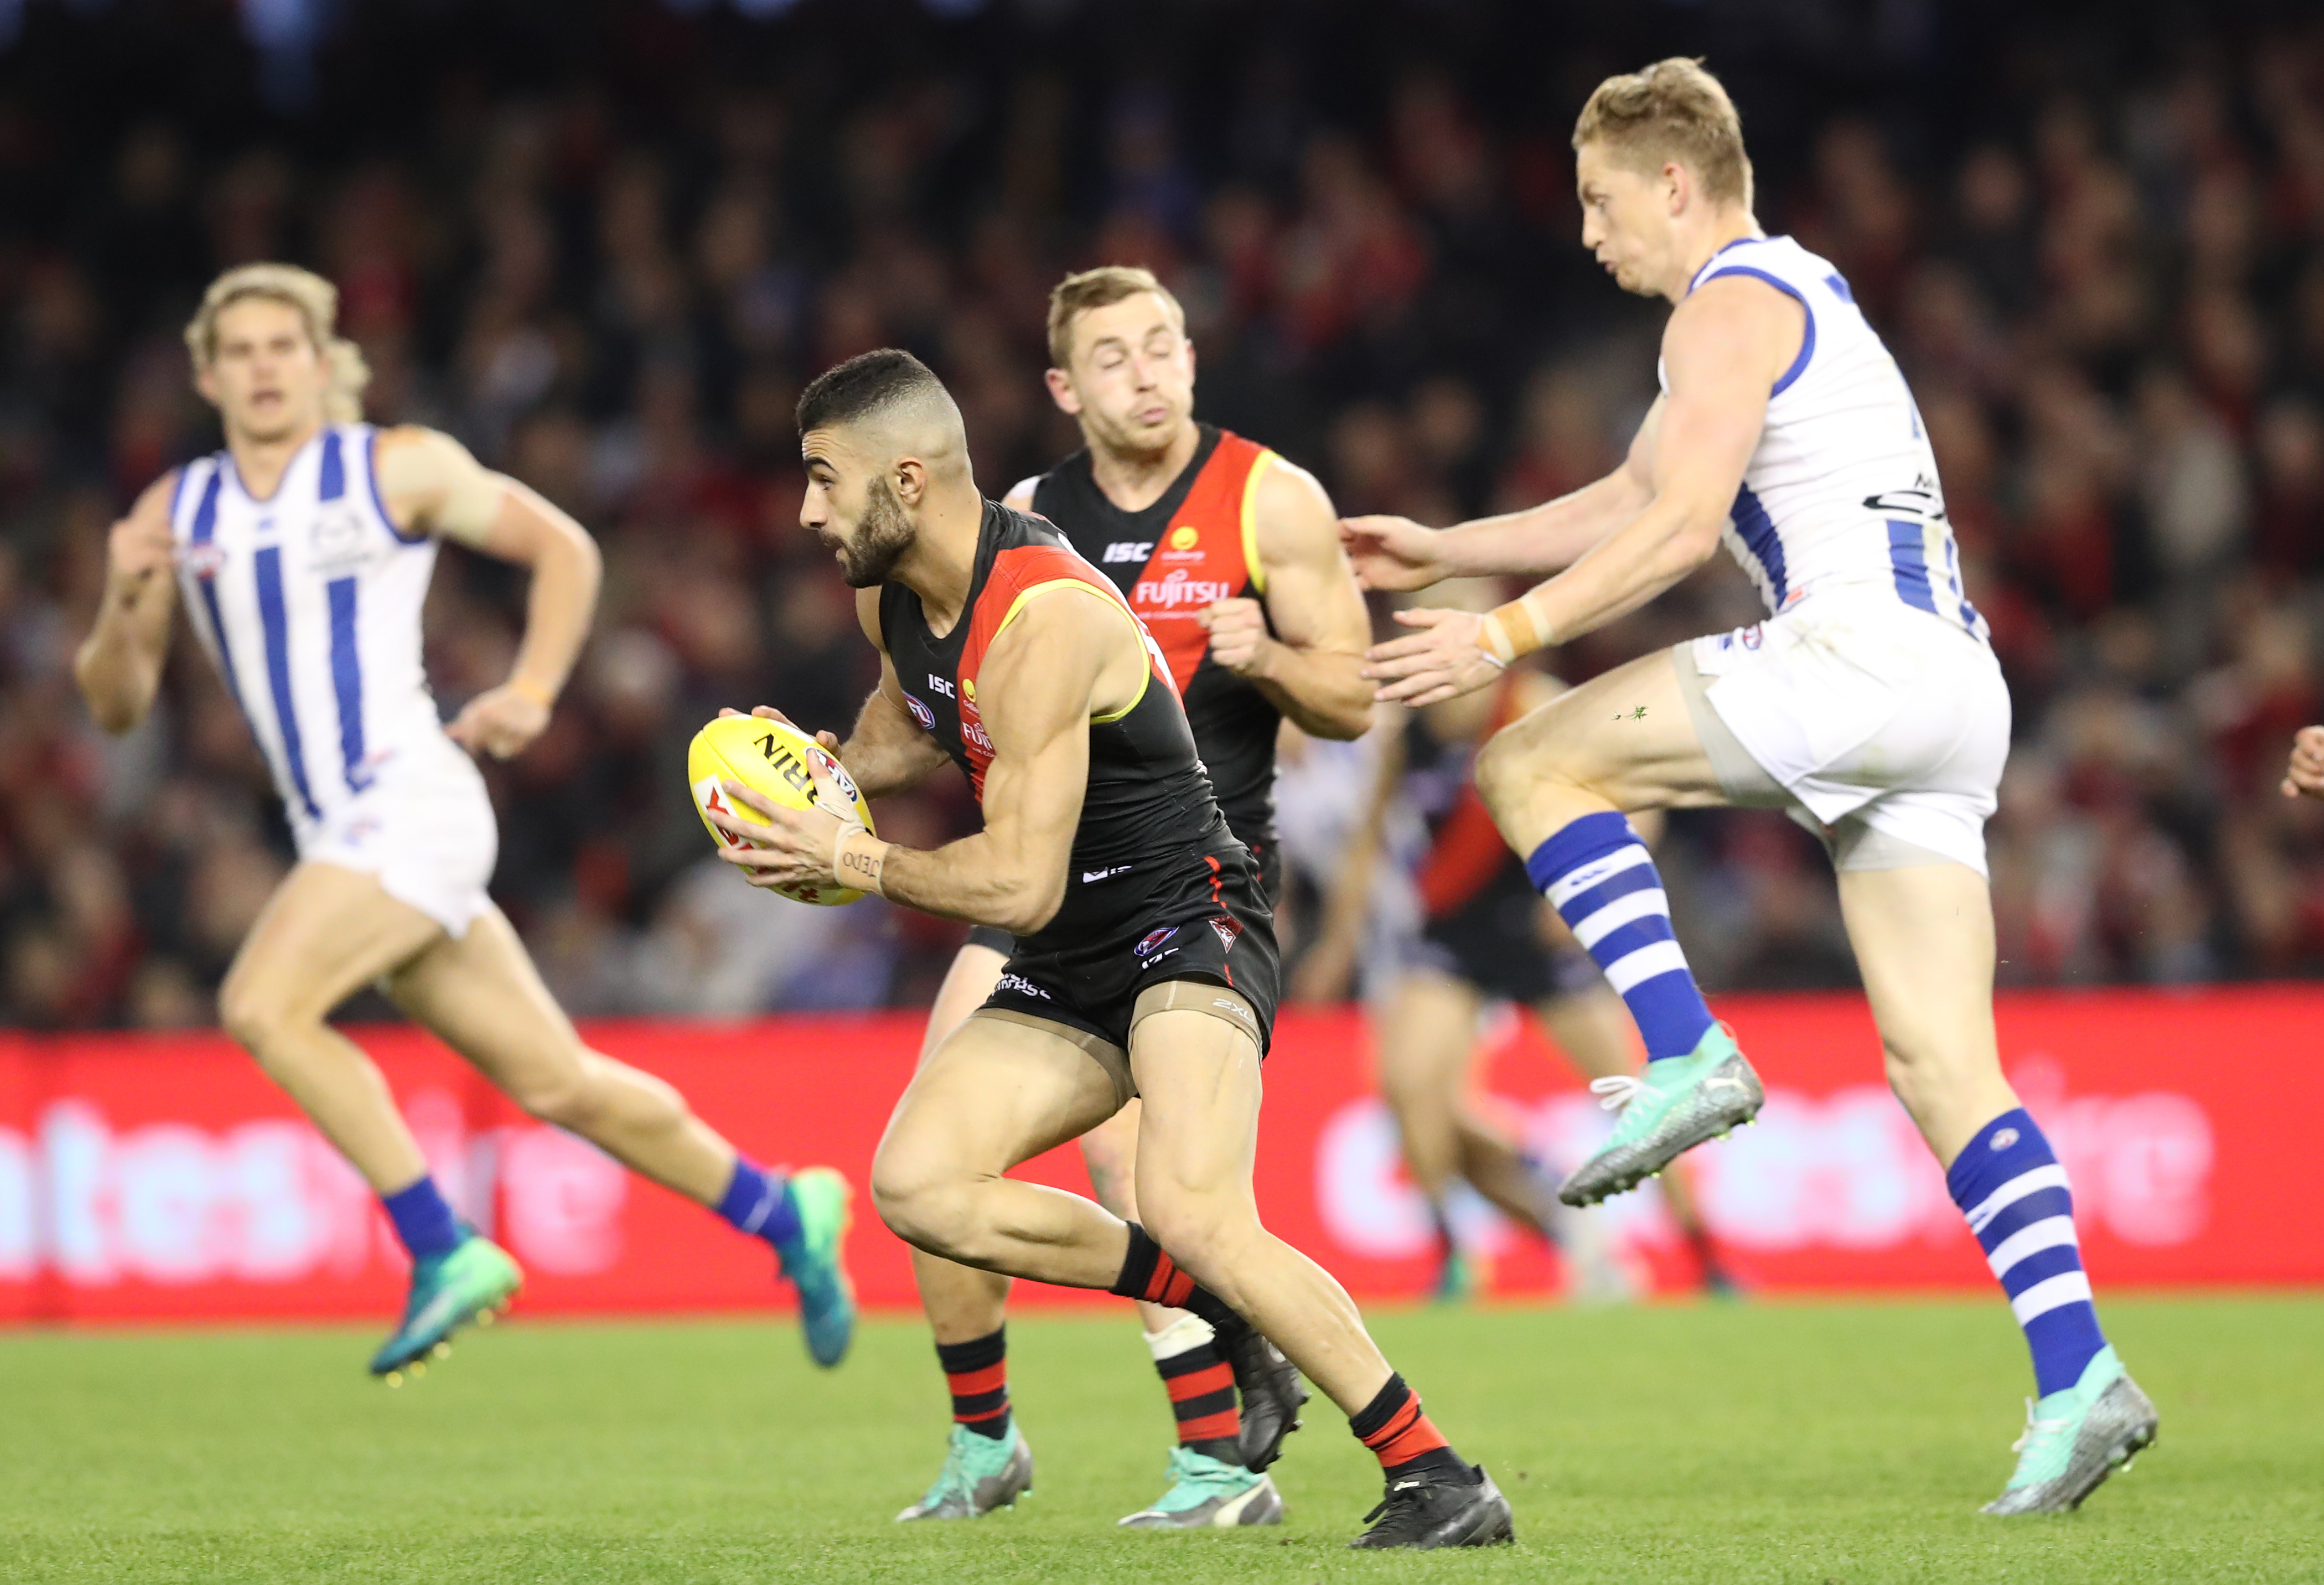 Essendon's presence on Good Friday guarantees big crowd, according to Sportsday co-host